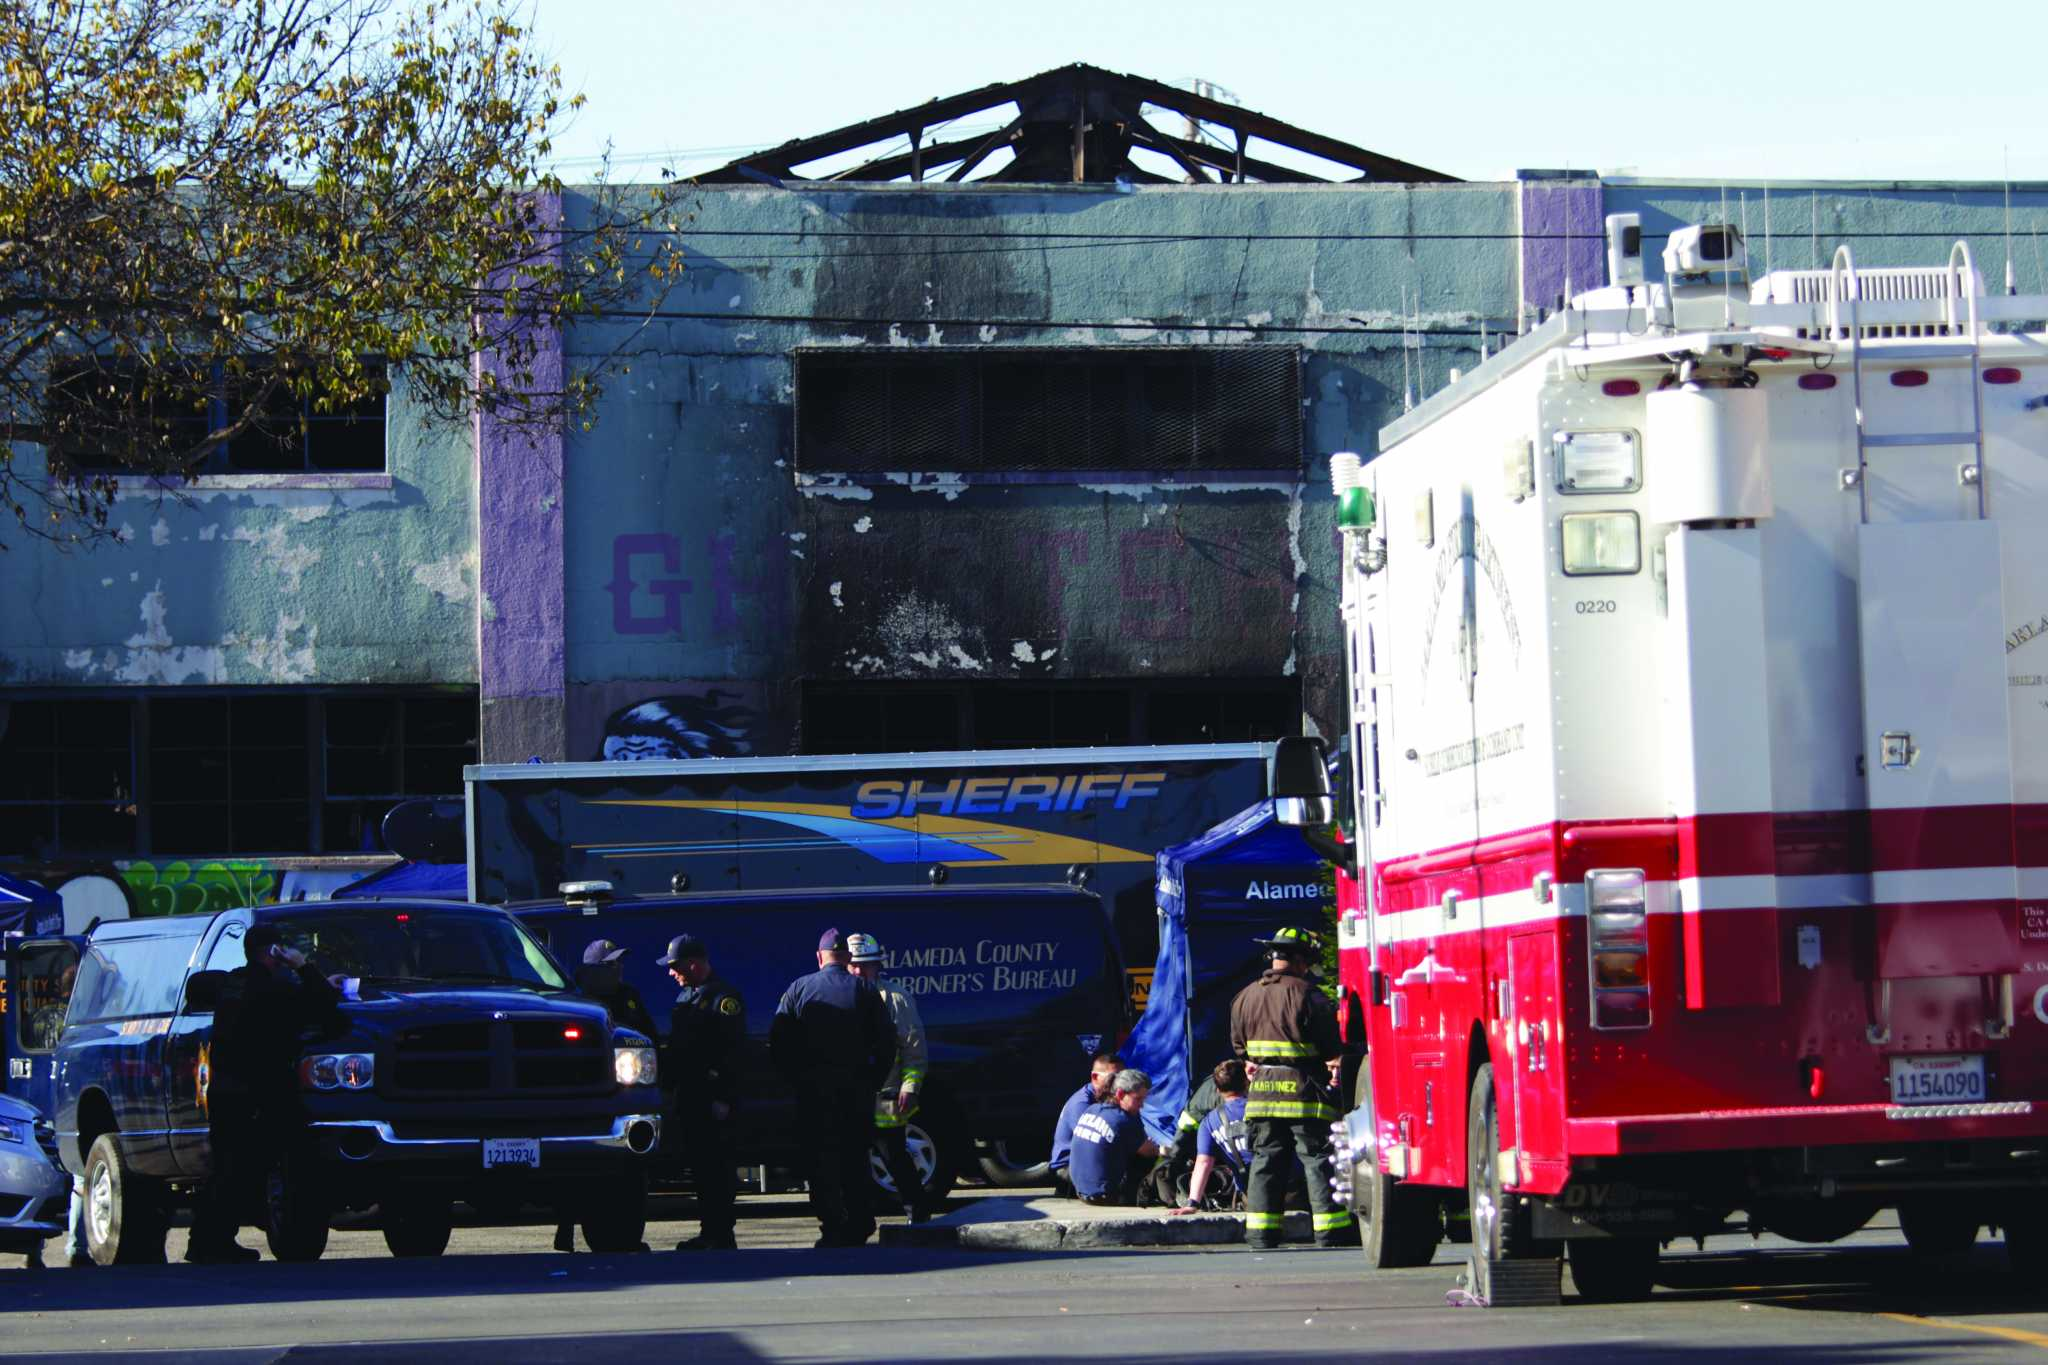 Alameda County Sheriffs, Oakland Fire Department, American Red Cross and Alameda County Coroner's Bureau are at the scene of the Ghost Ship artist warehouse fire on Friday, in Oakland, Calif. on Saturday, Dec. 3, 2016. (Kona Kalamian / Special to Xpress)